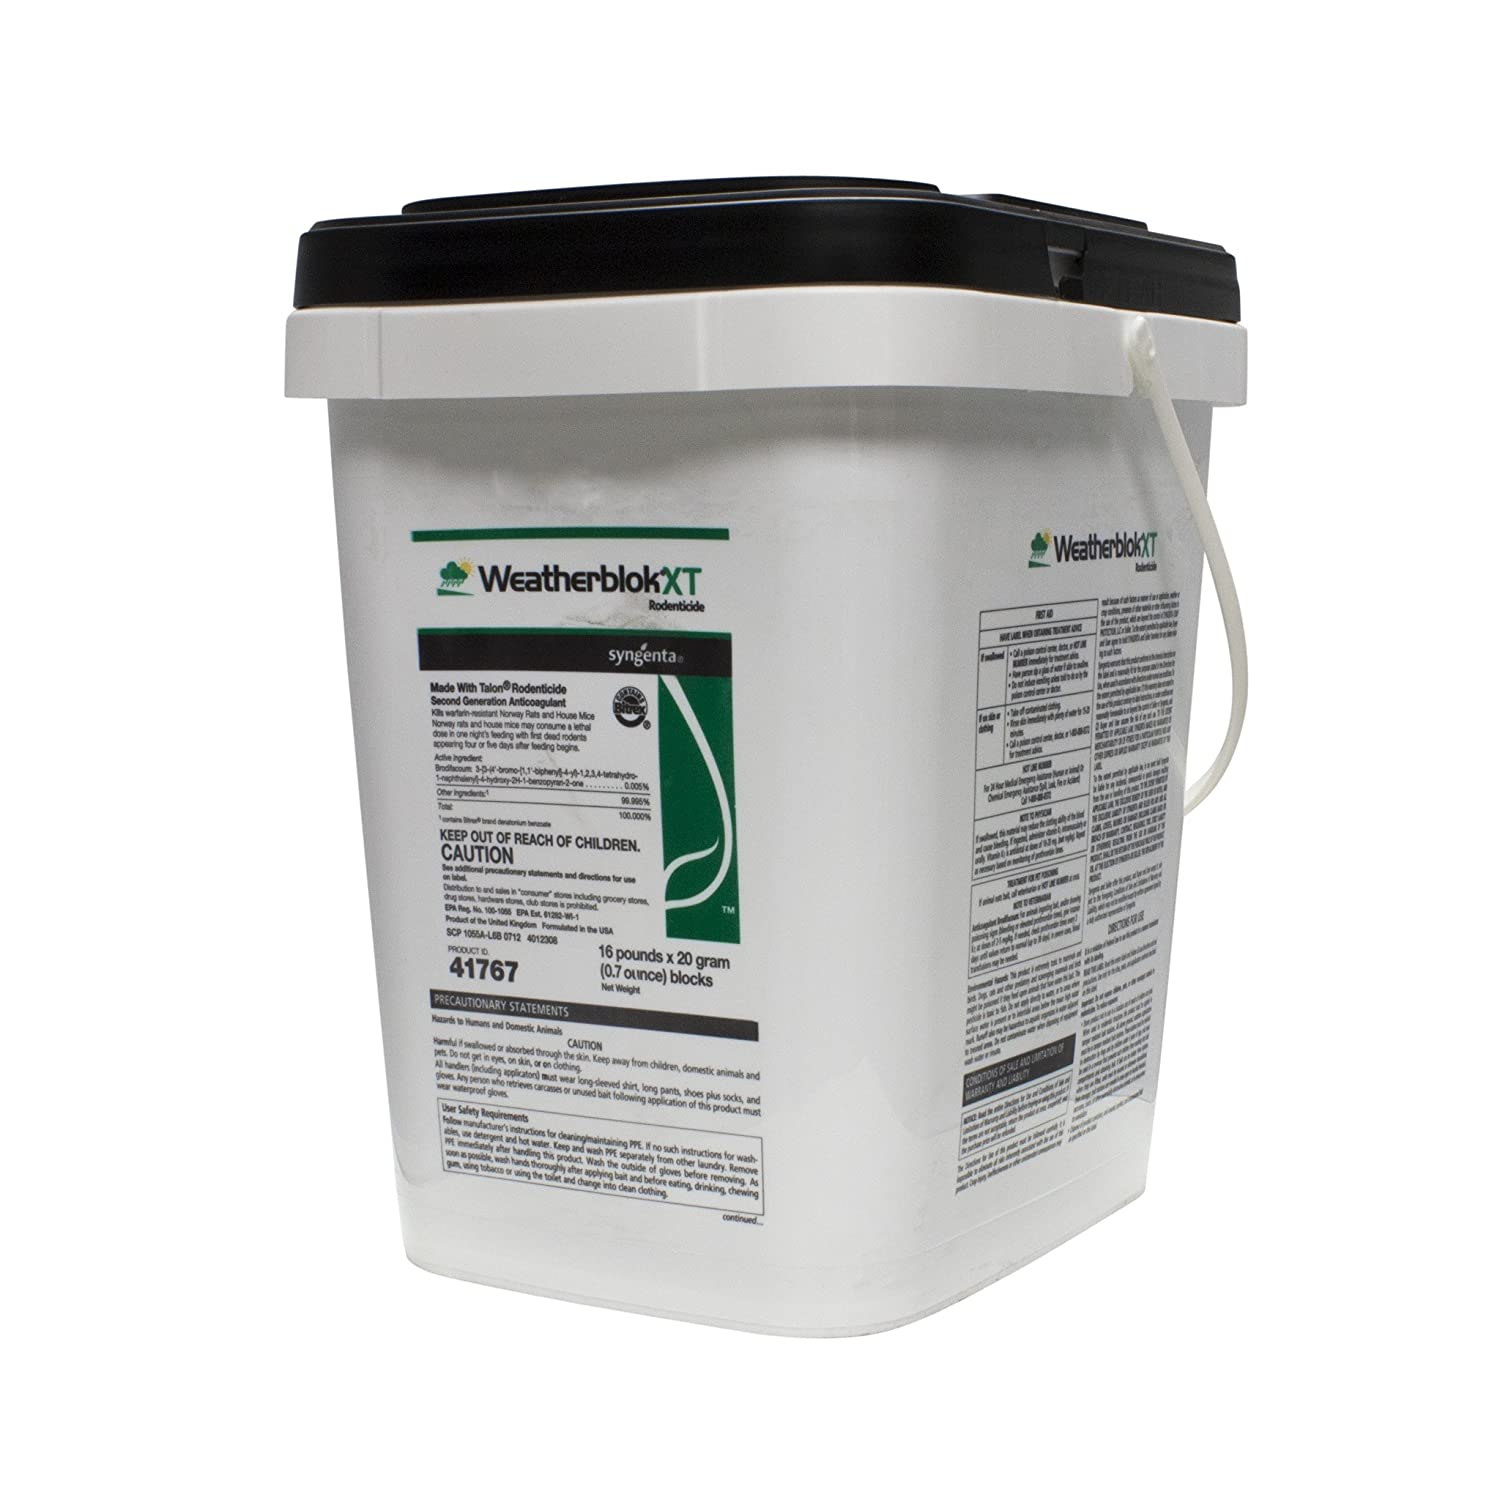 Amazon com : Syngenta KILL RATS WITH WEATHERBLOK XT 16# PAIL : Home